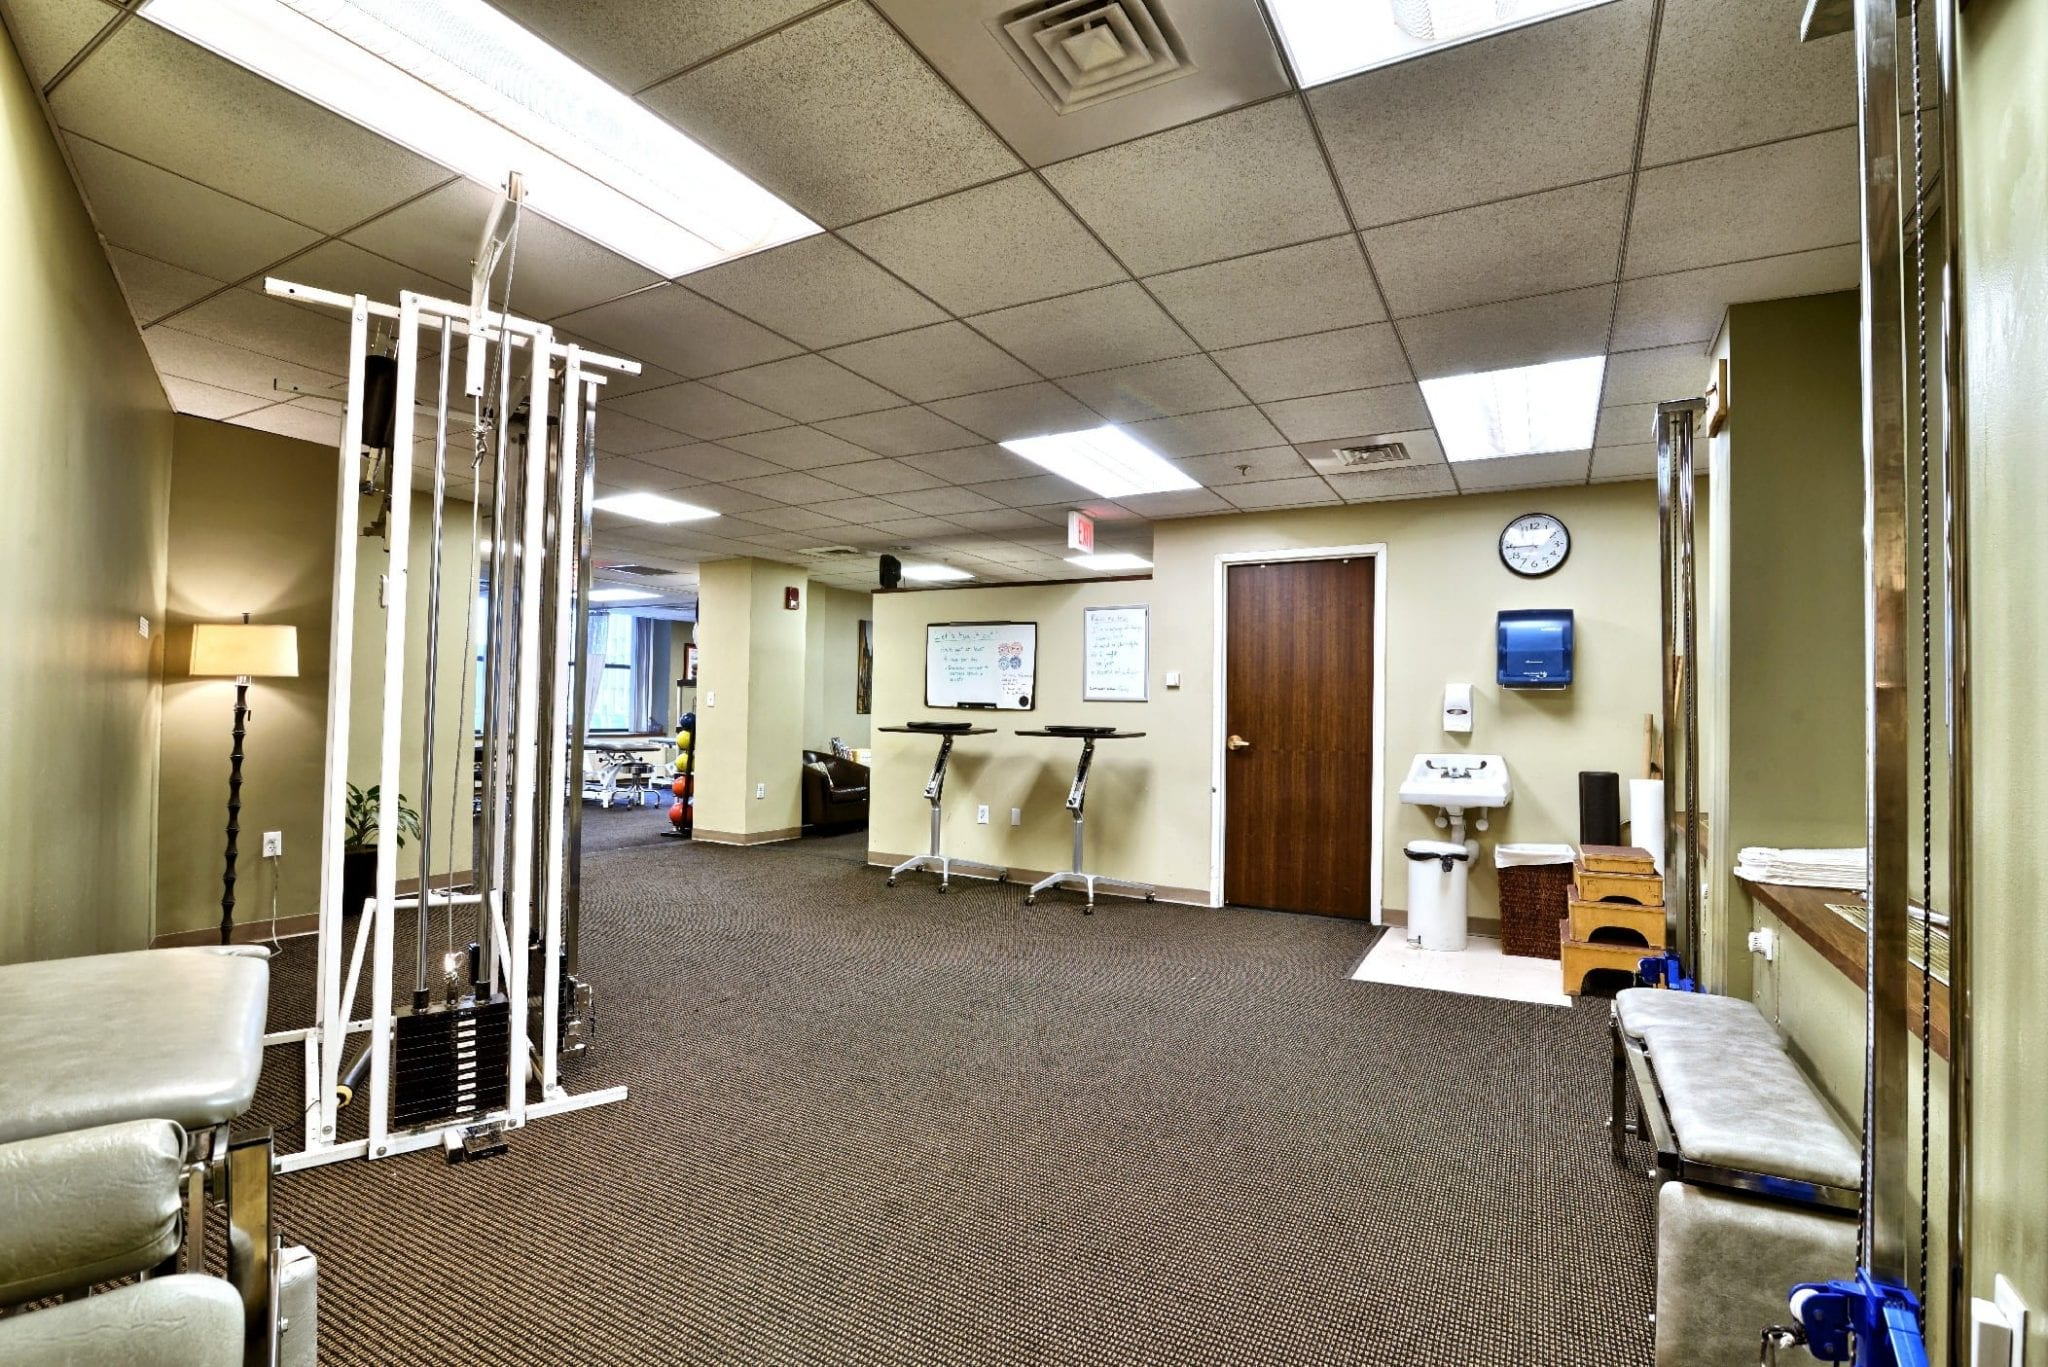 Here is an image of the inside of our physical therapy clinic in Boston, Massachusetts.